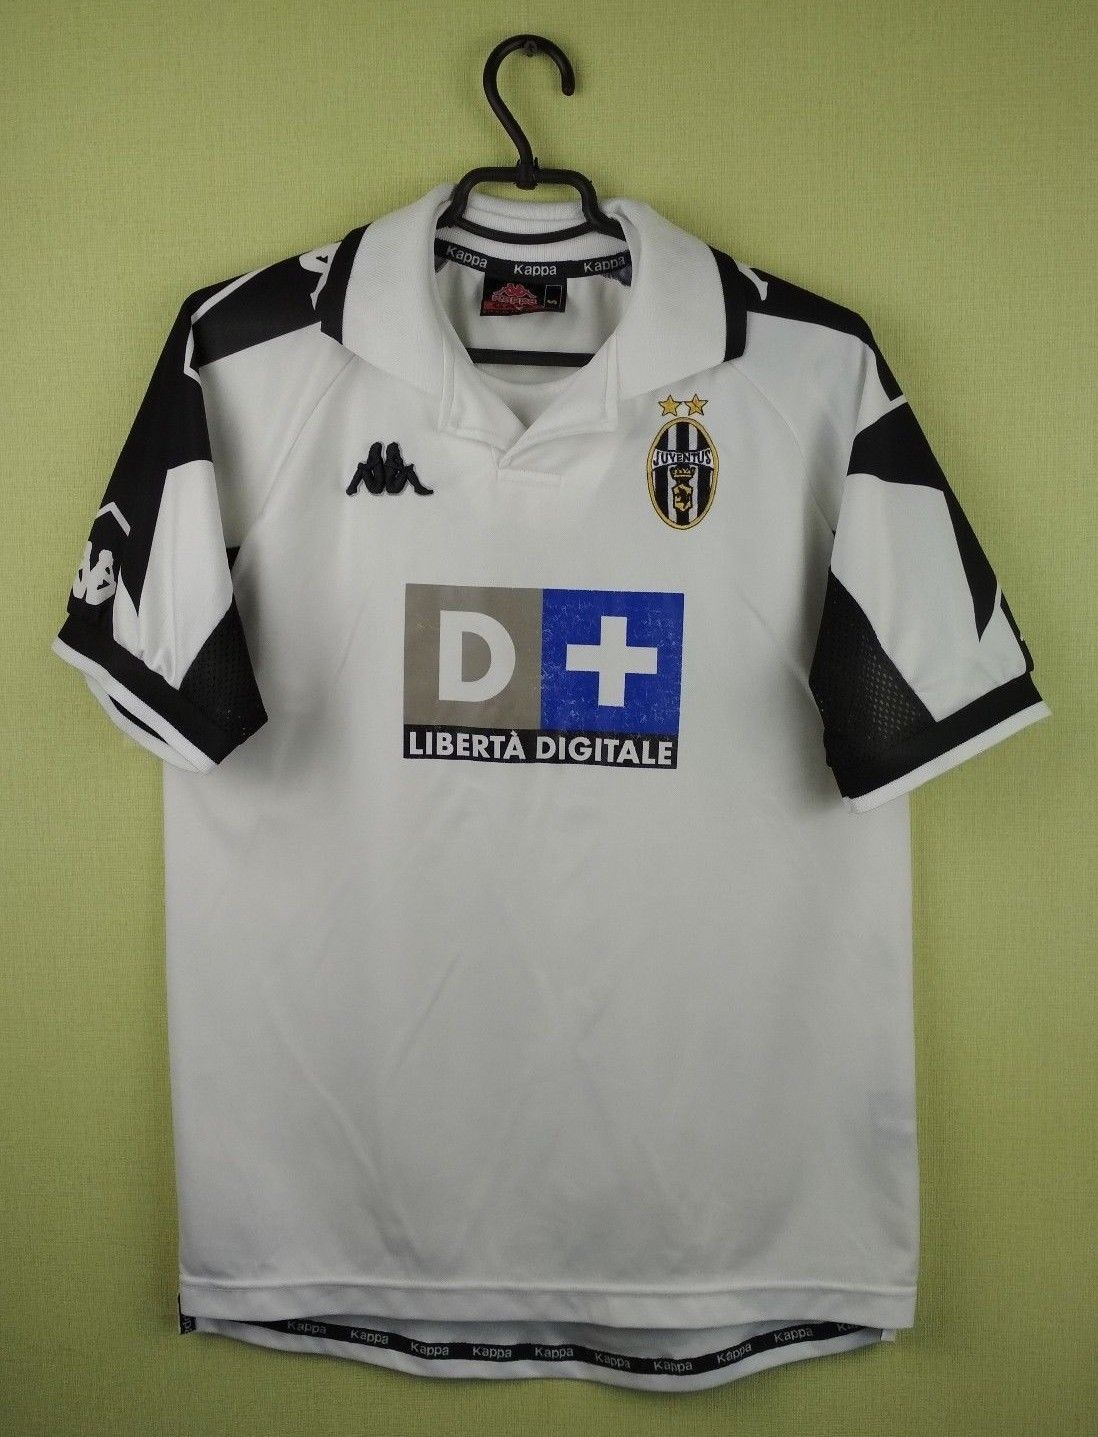 c6cd80bbd84 Juventus jersey shirt 1999 2000 Away official kappa soccer football size S  (eBay Link)